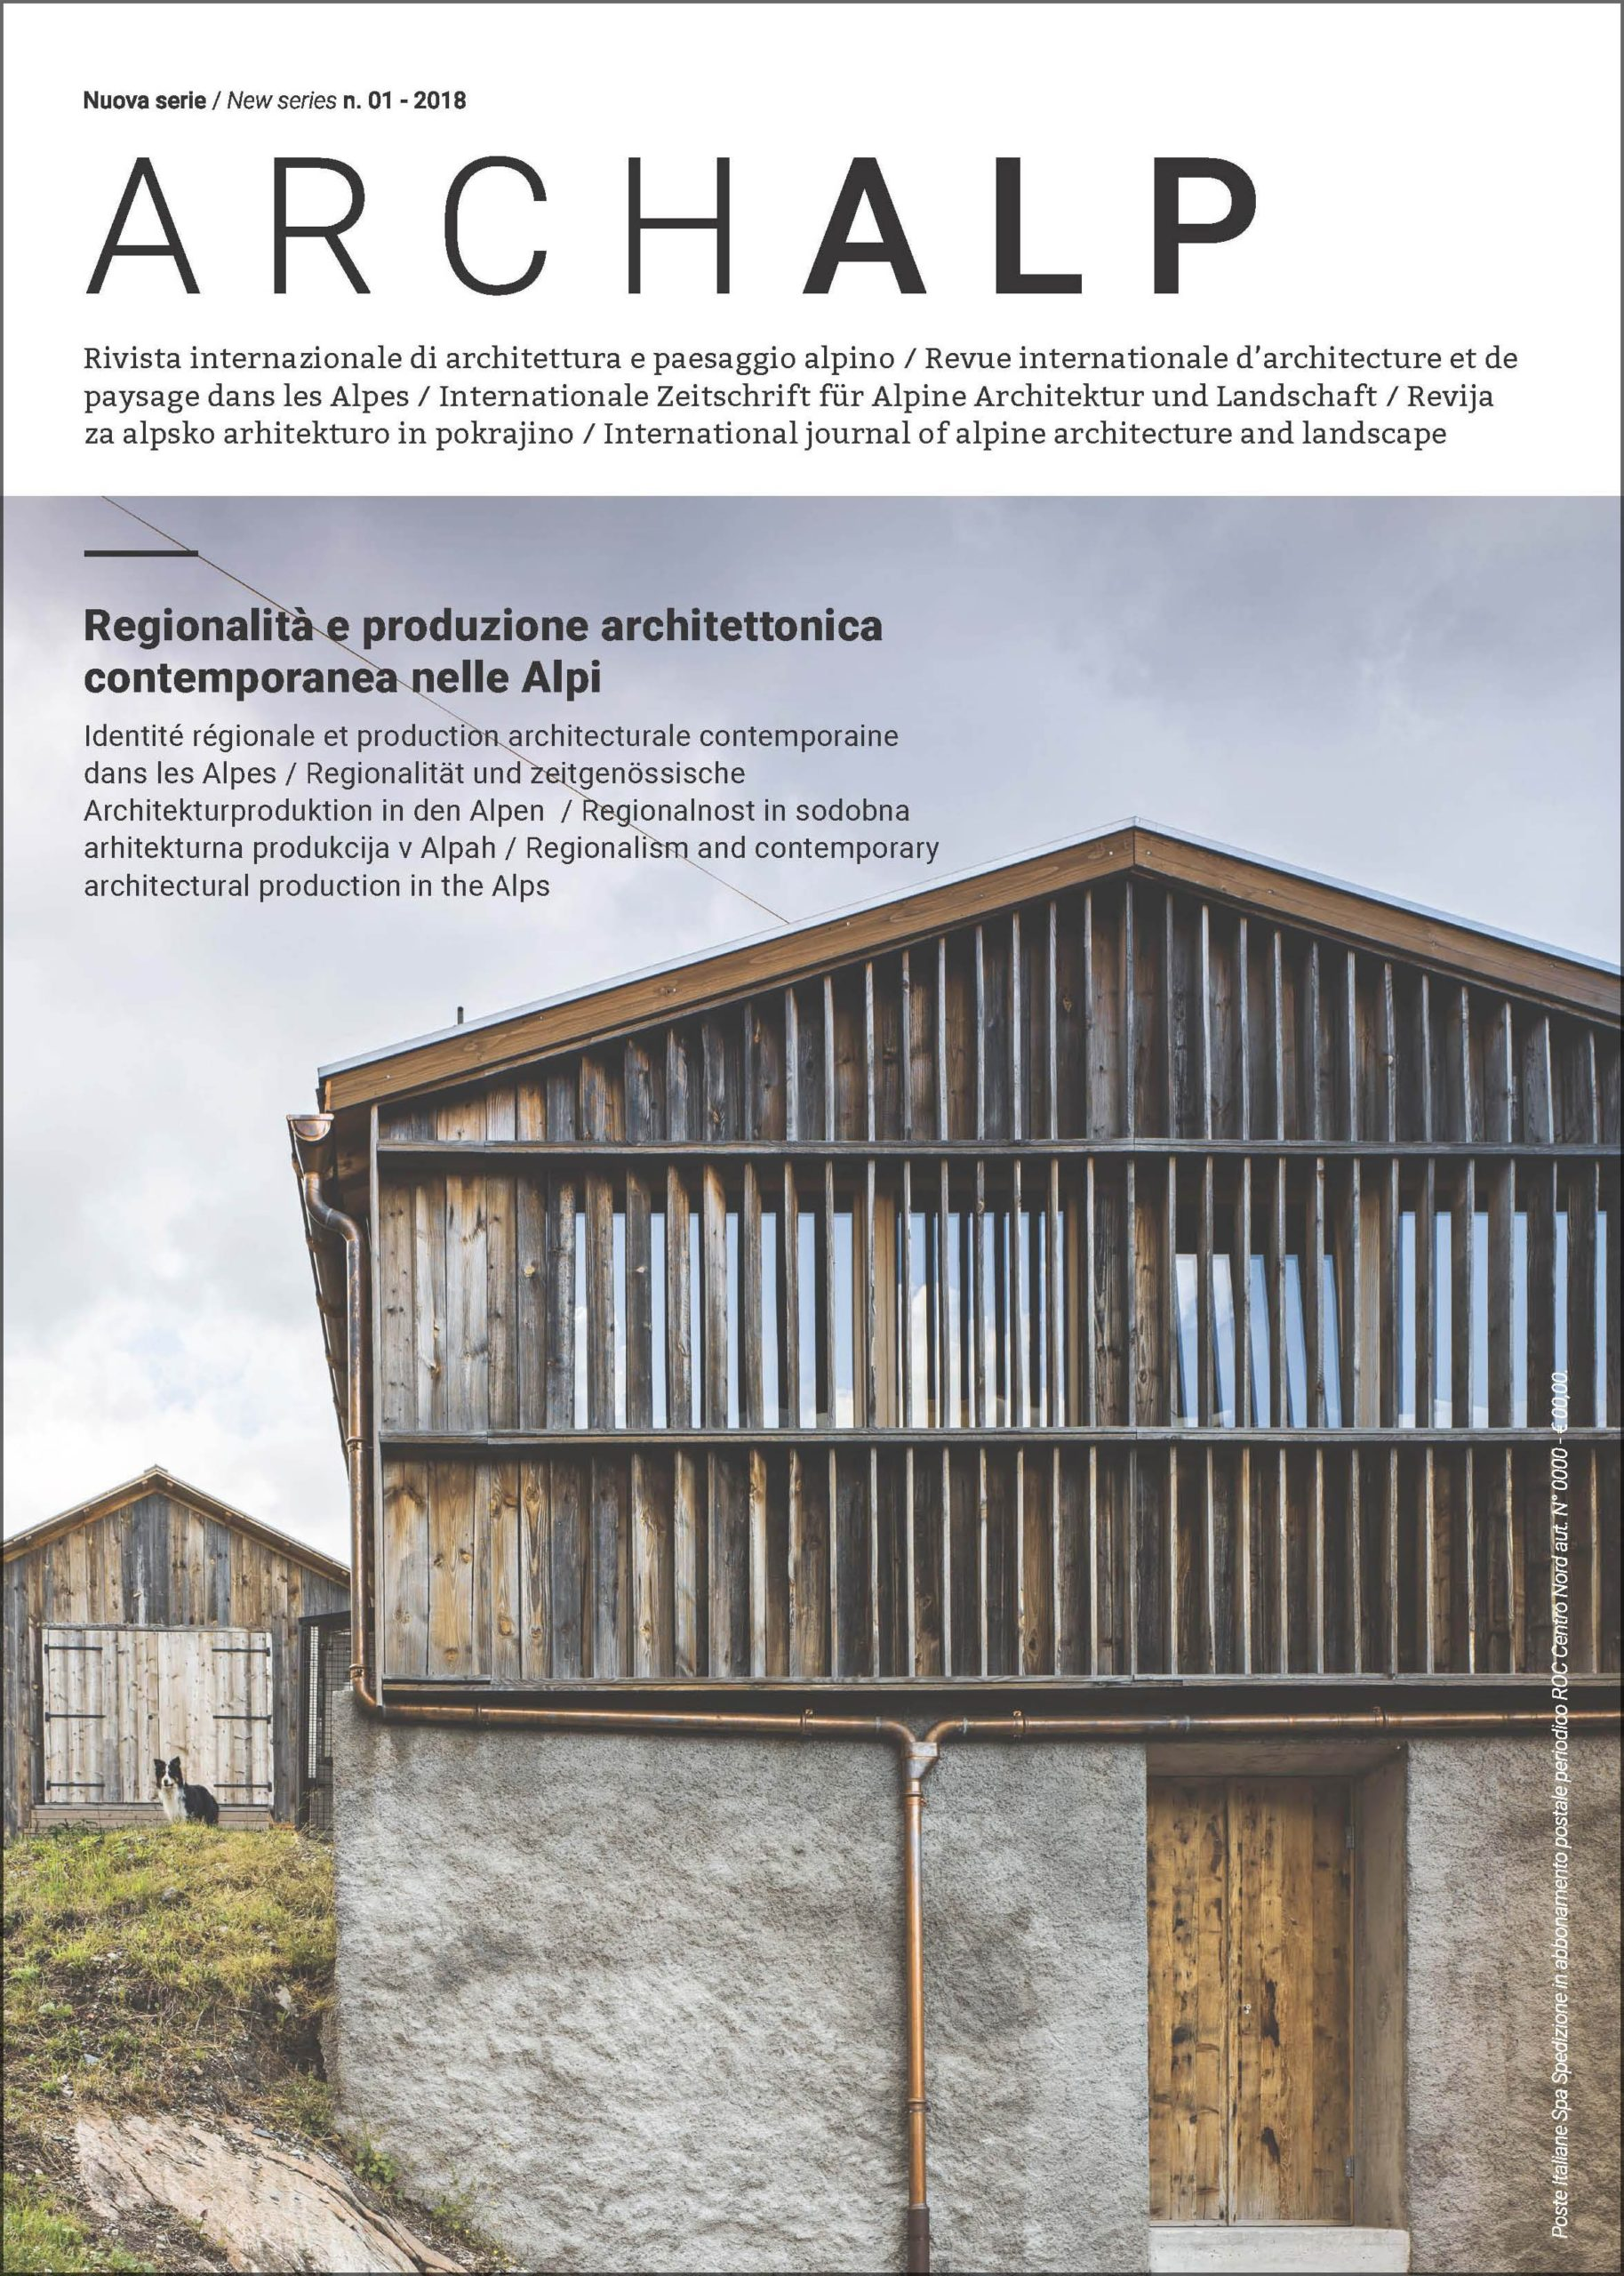 Archalp Bononia University Press